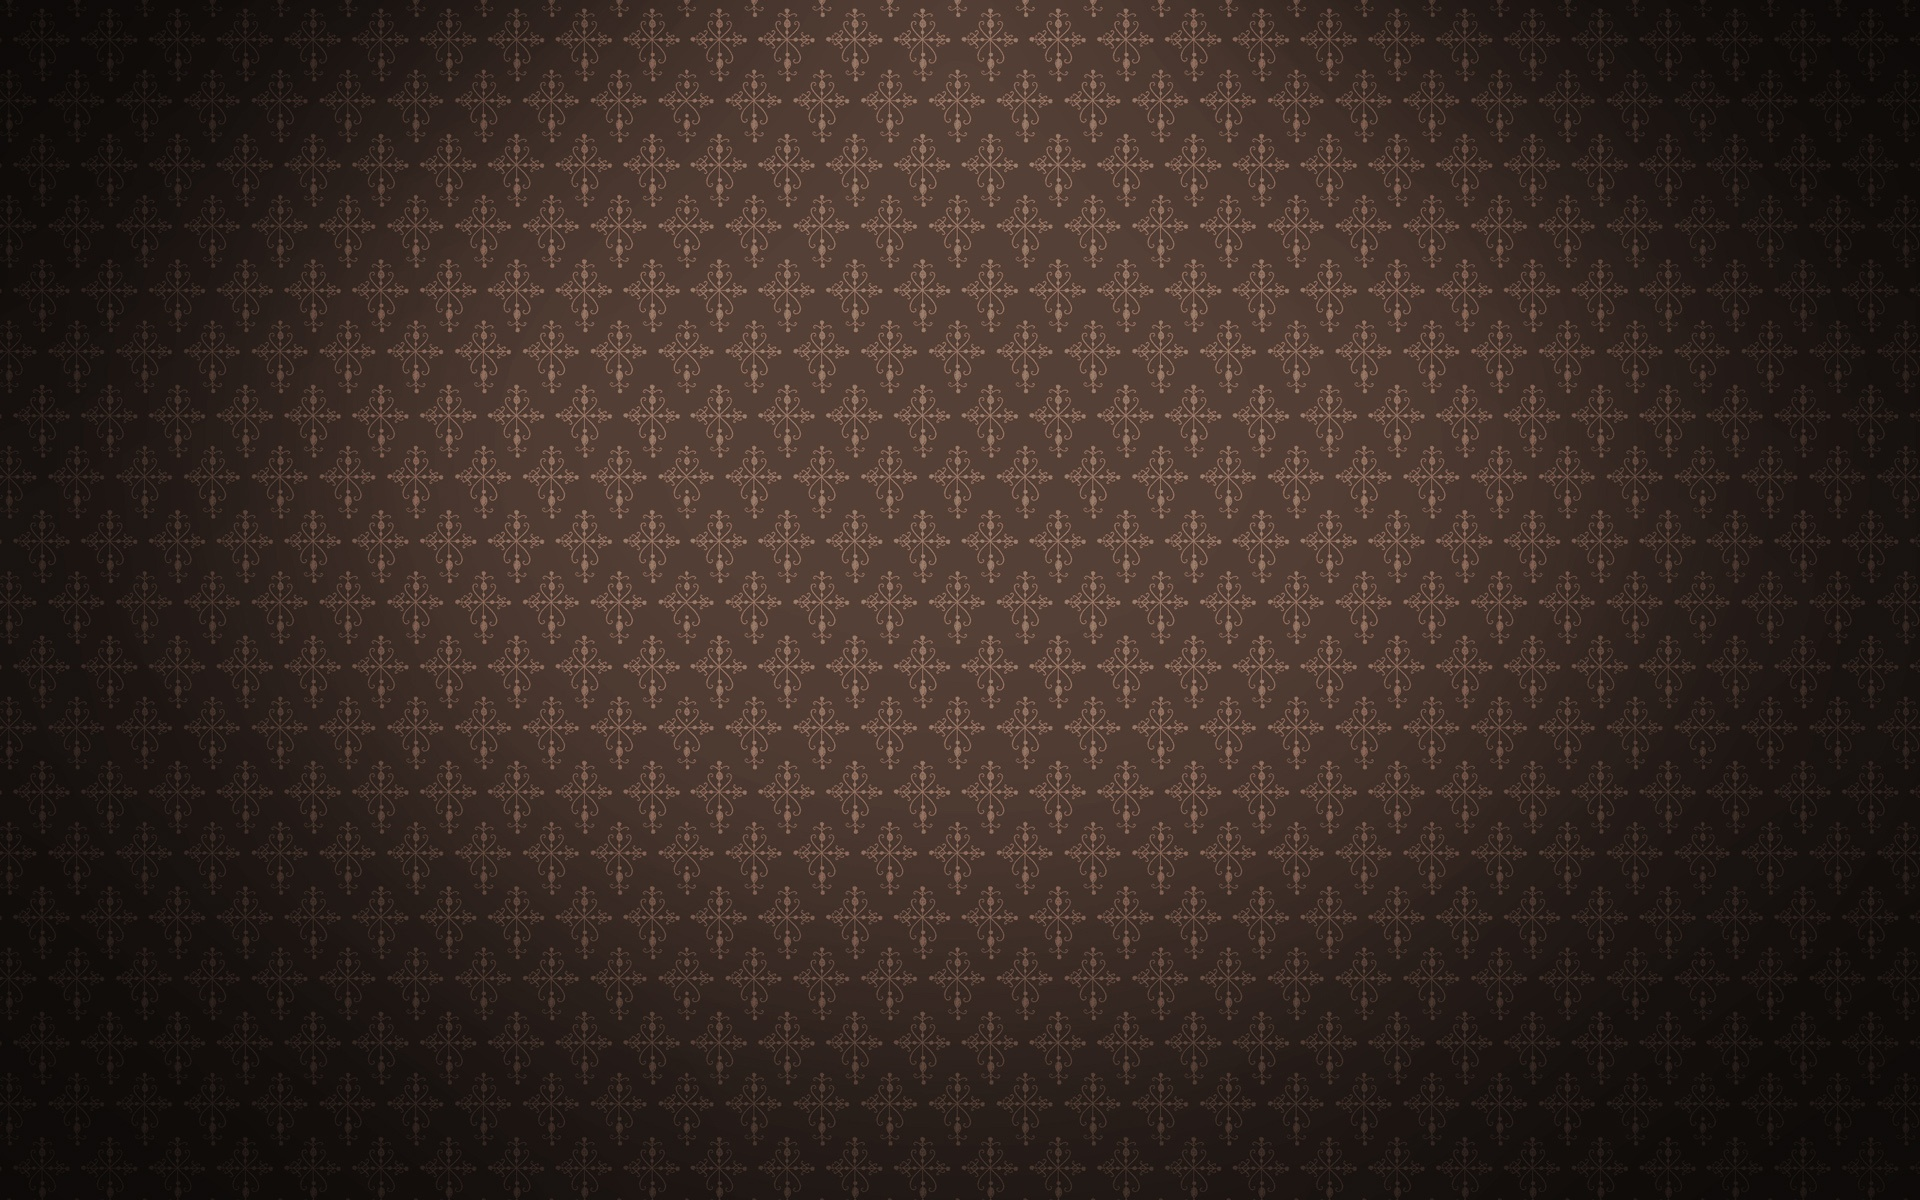 Vintage Wall   Cool Twitter Backgrounds 1920x1200